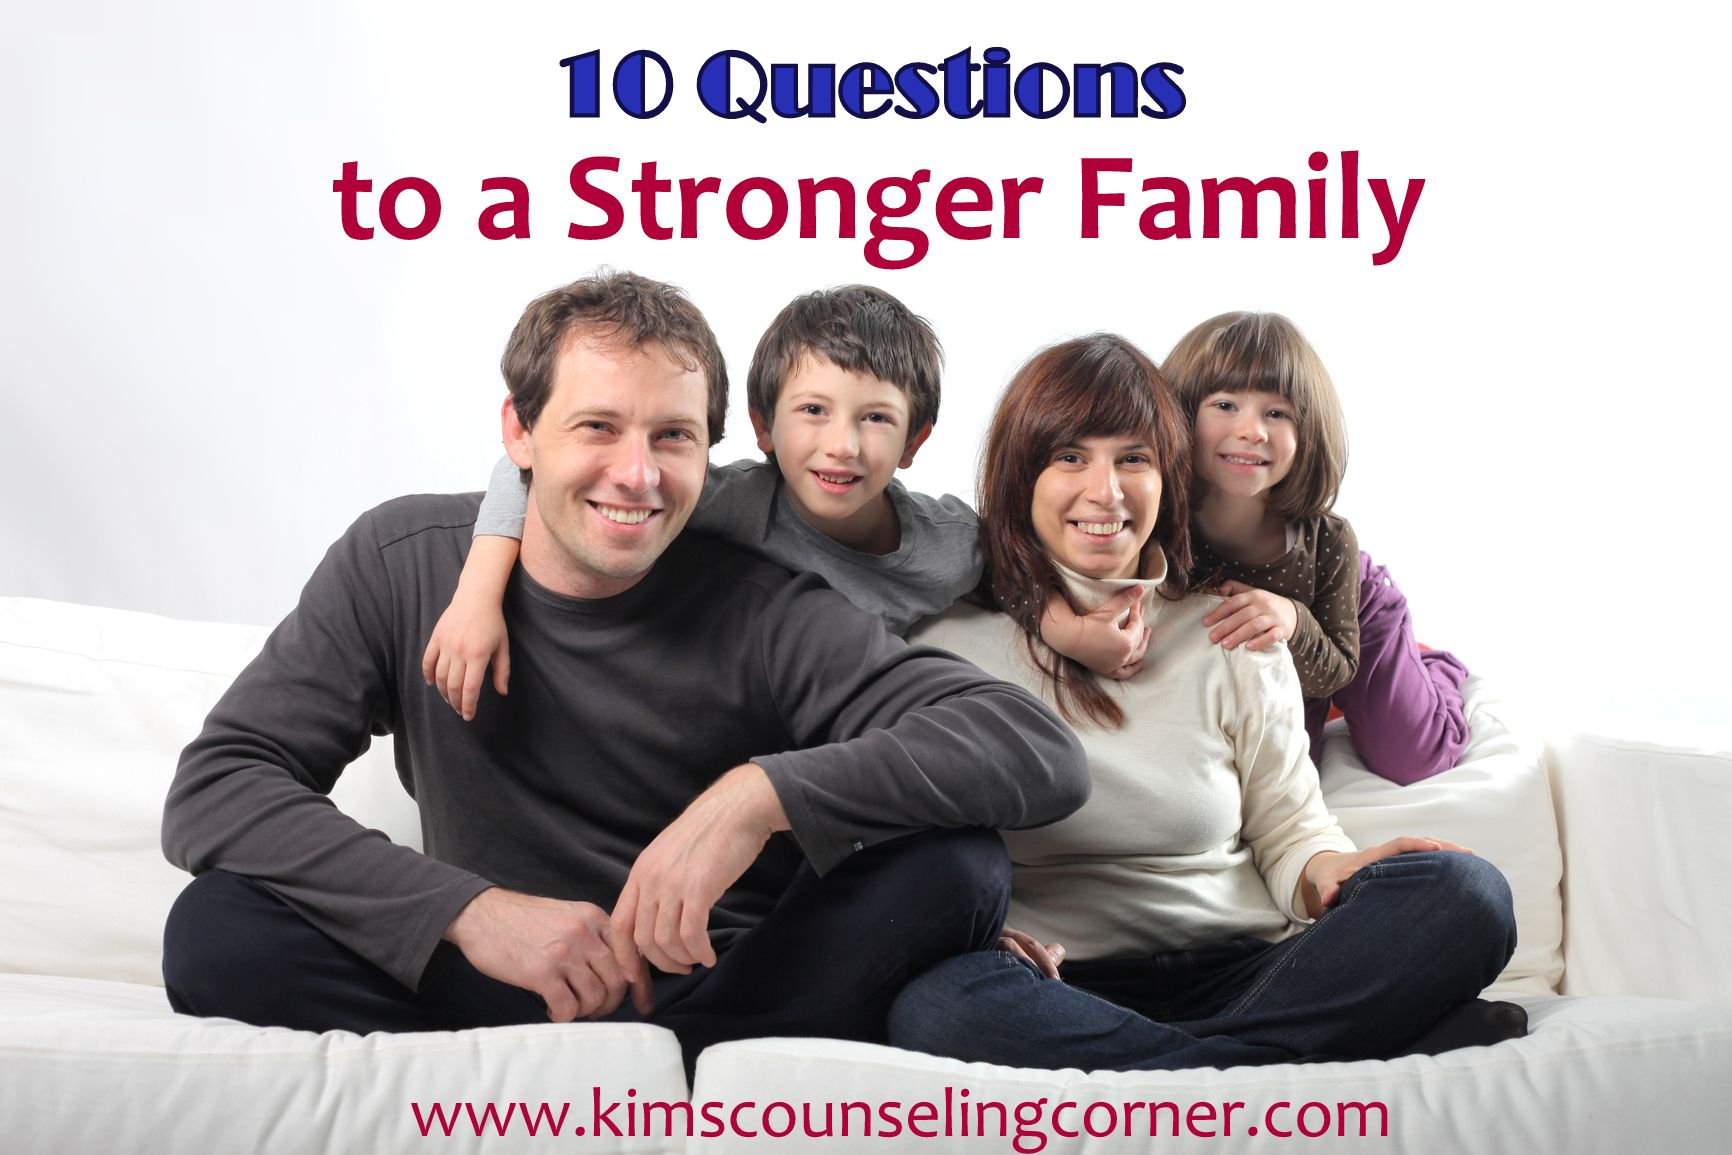 A Simple Game For Building A Stronger Family